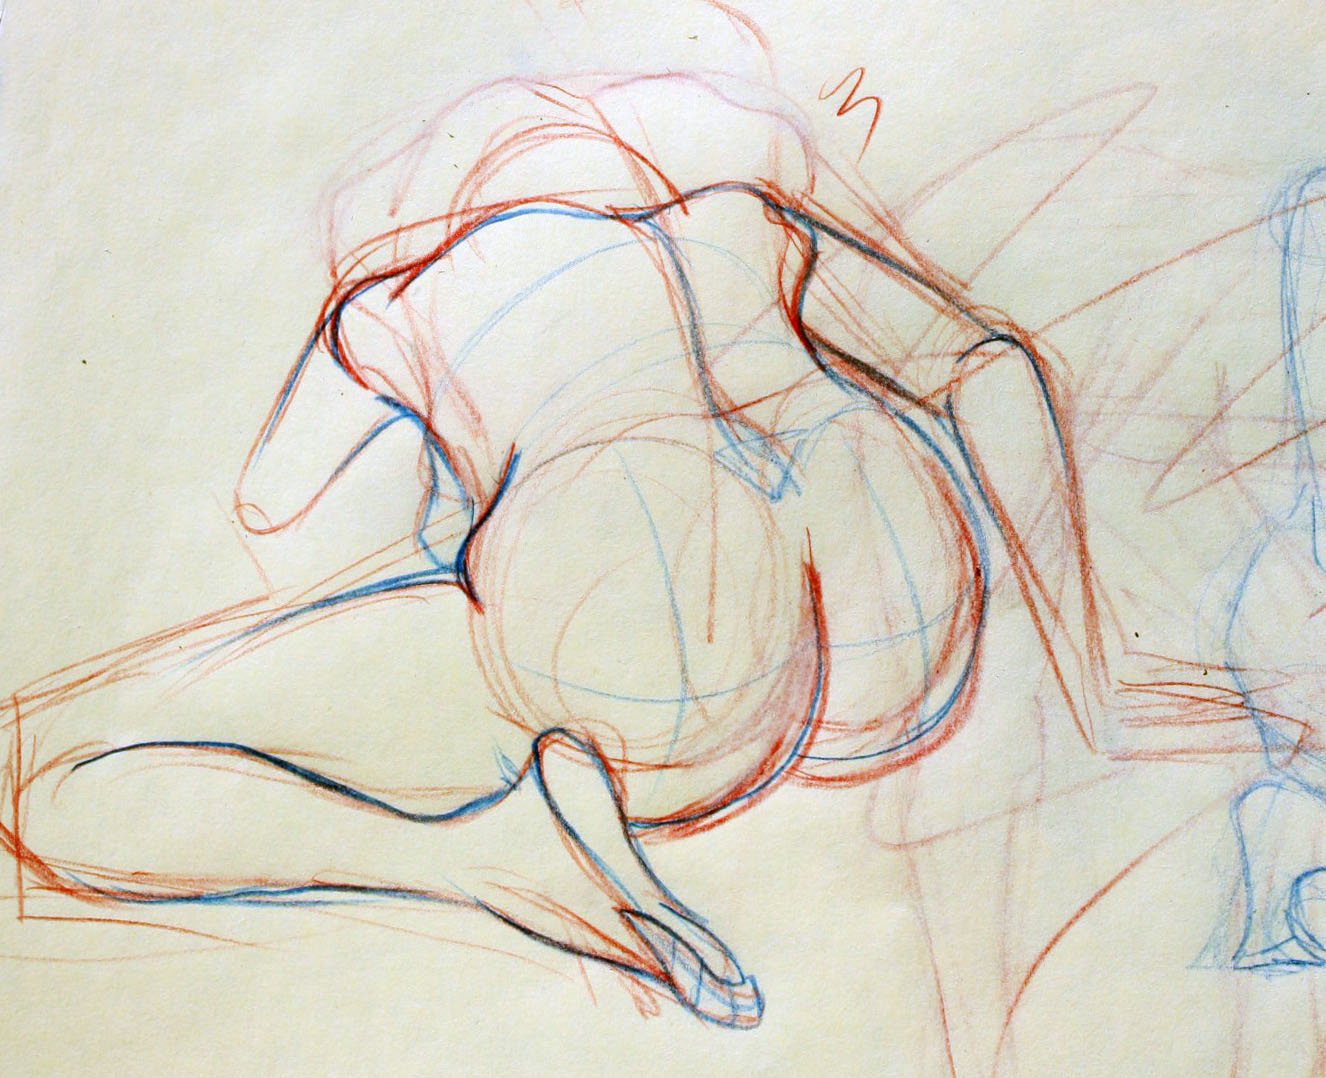 Krick's Art: Life Drawing - Quick Sketches